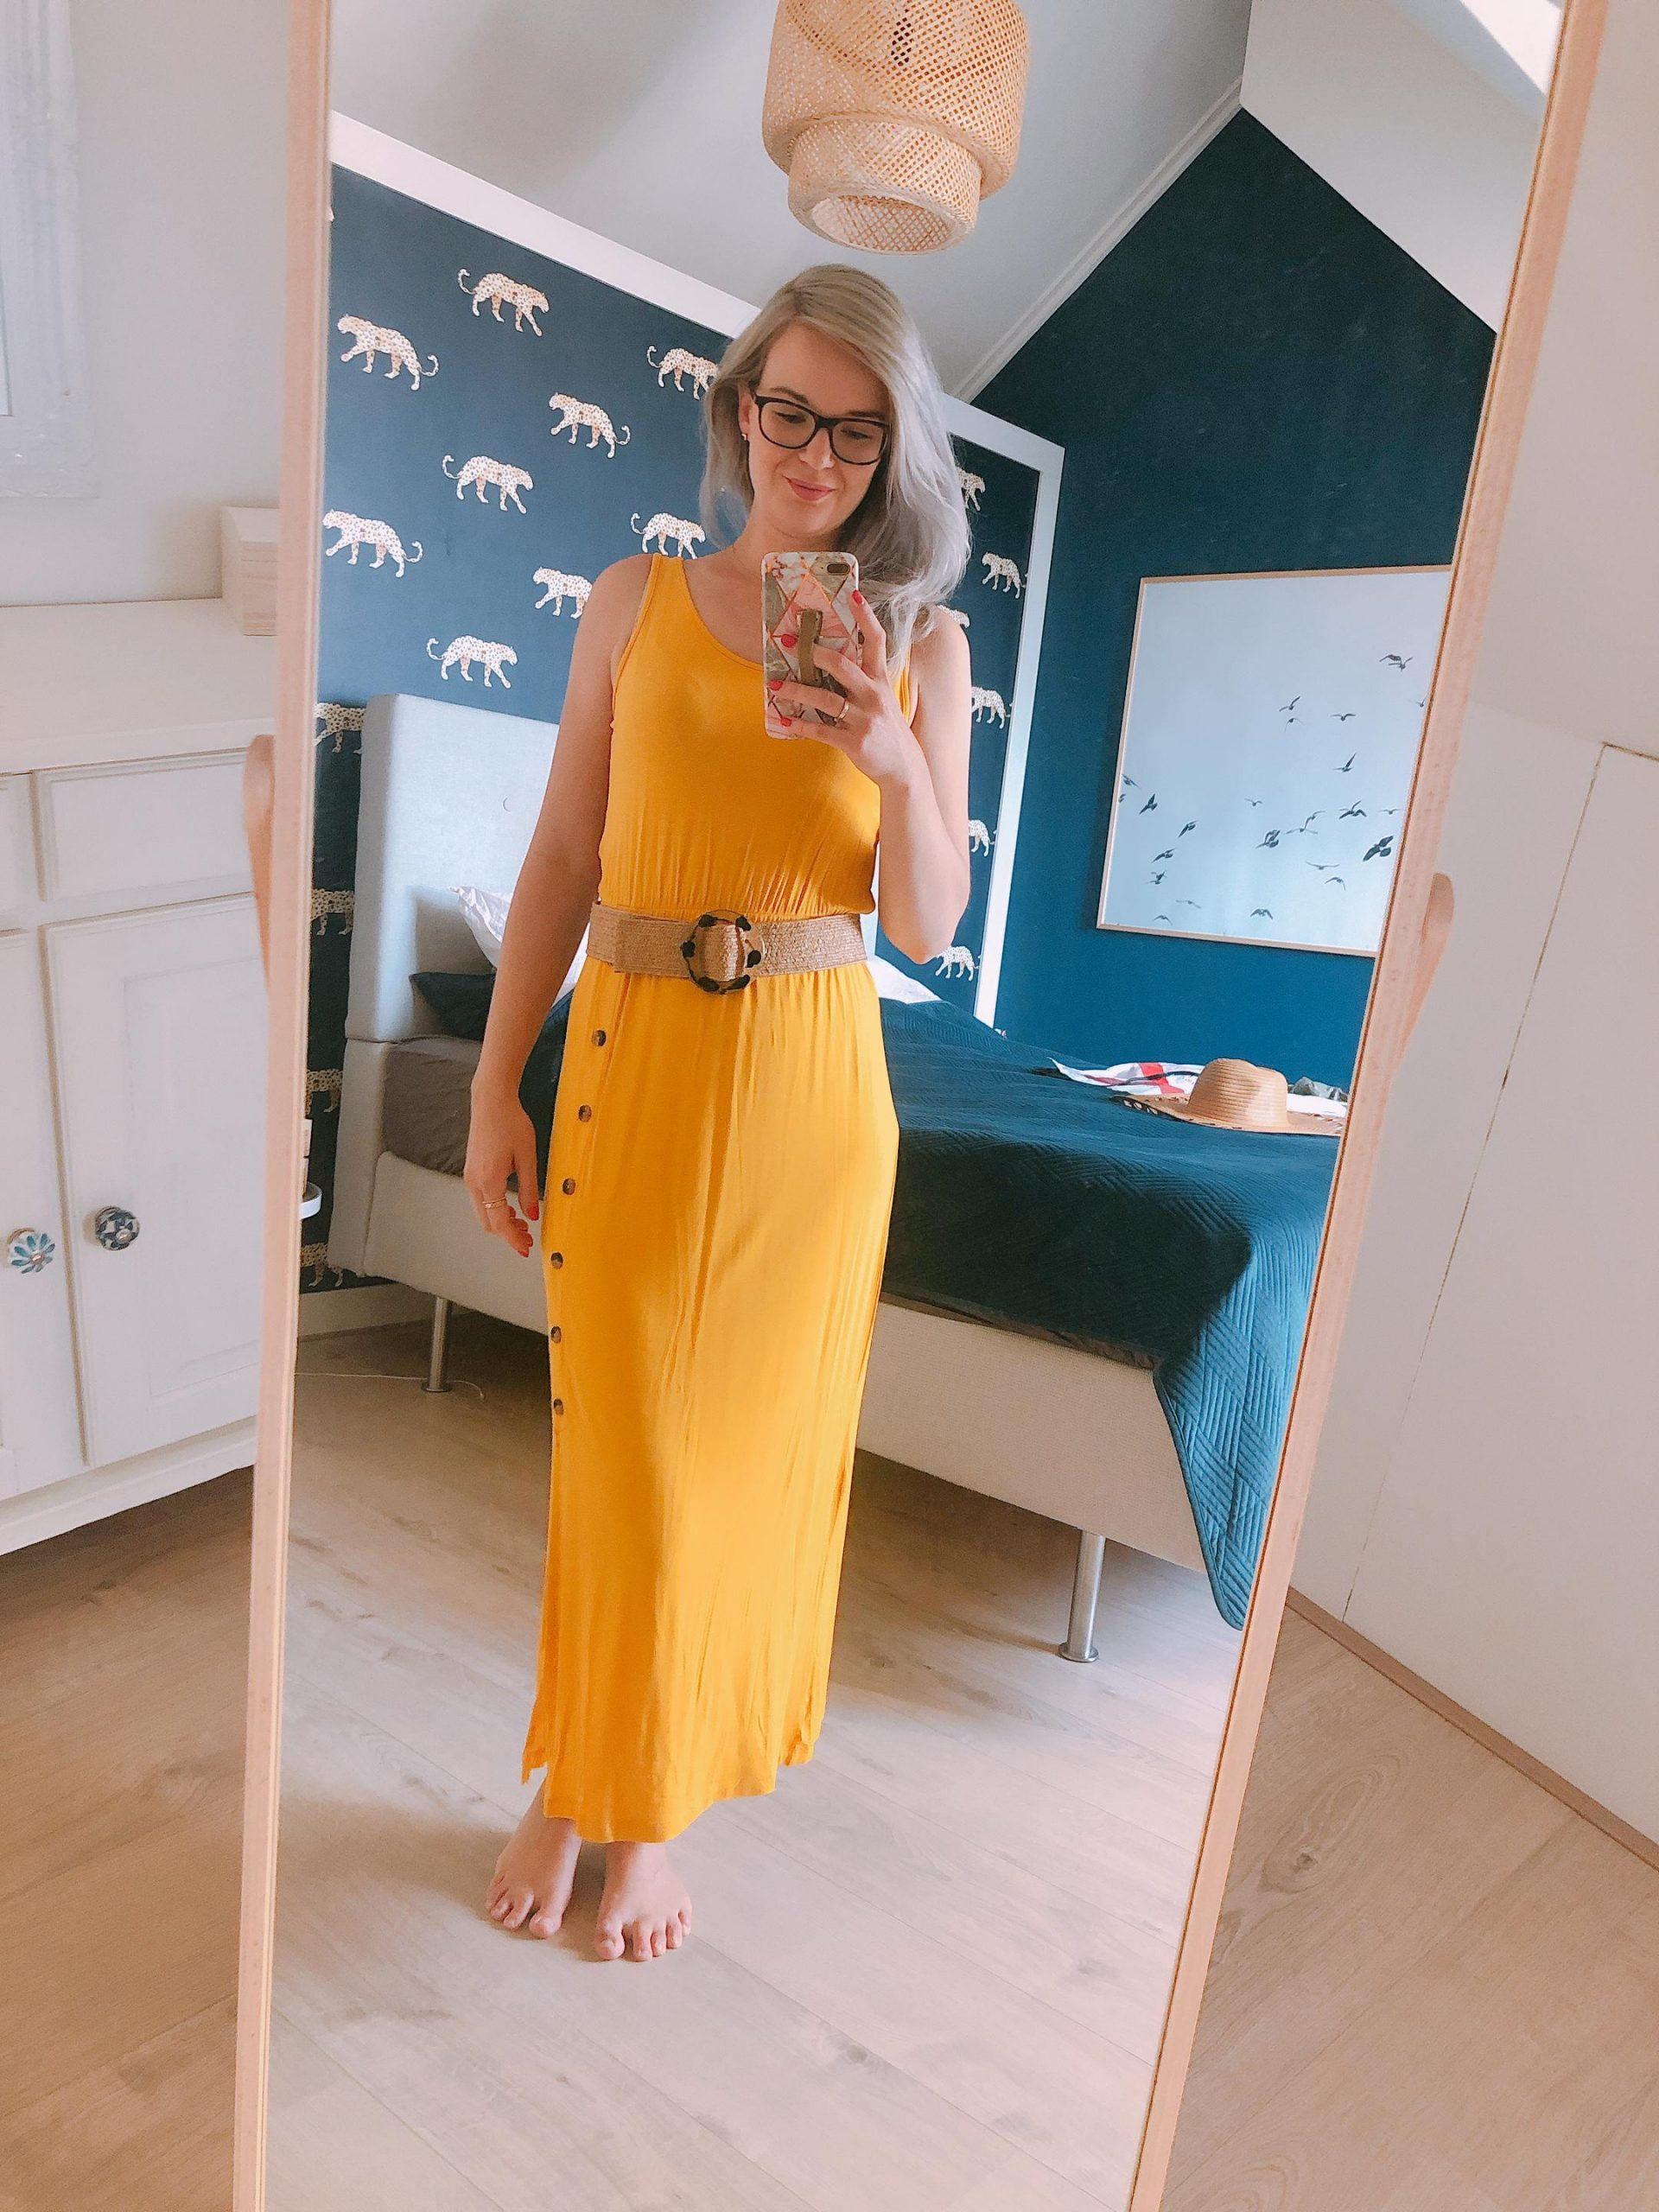 IMG 9647 2160x2880 1 scaled - 3x Zomerse Bohemien Outfits (Shoplog)!